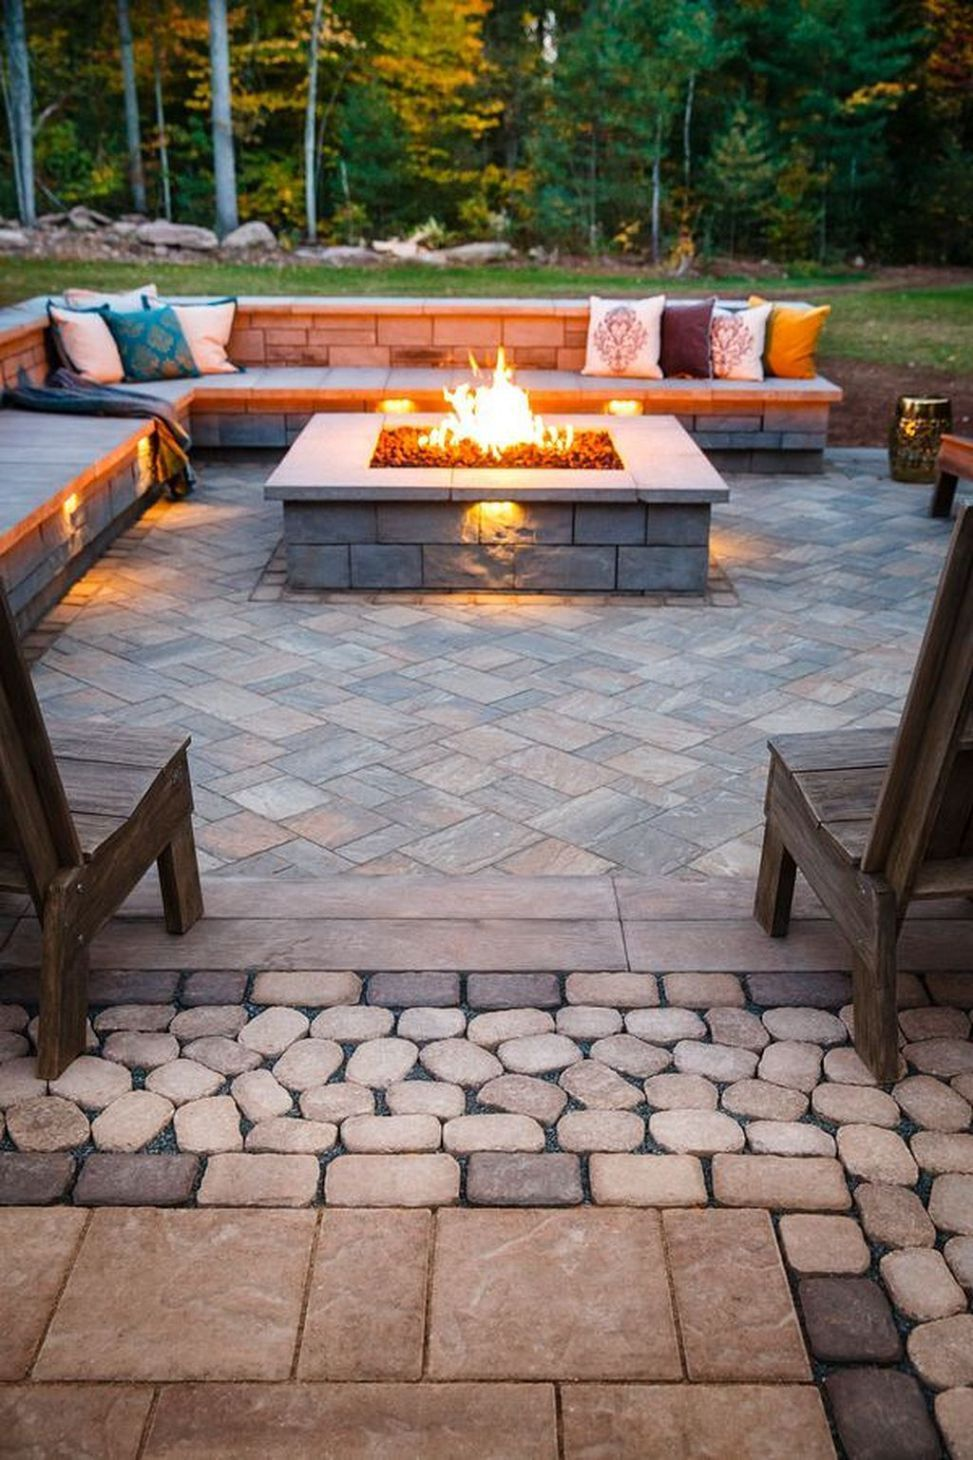 Easy Fire Pit Backyard Ideas (10)   Fire pit backyard ... on Simple Patio Designs With Fire Pit id=70305